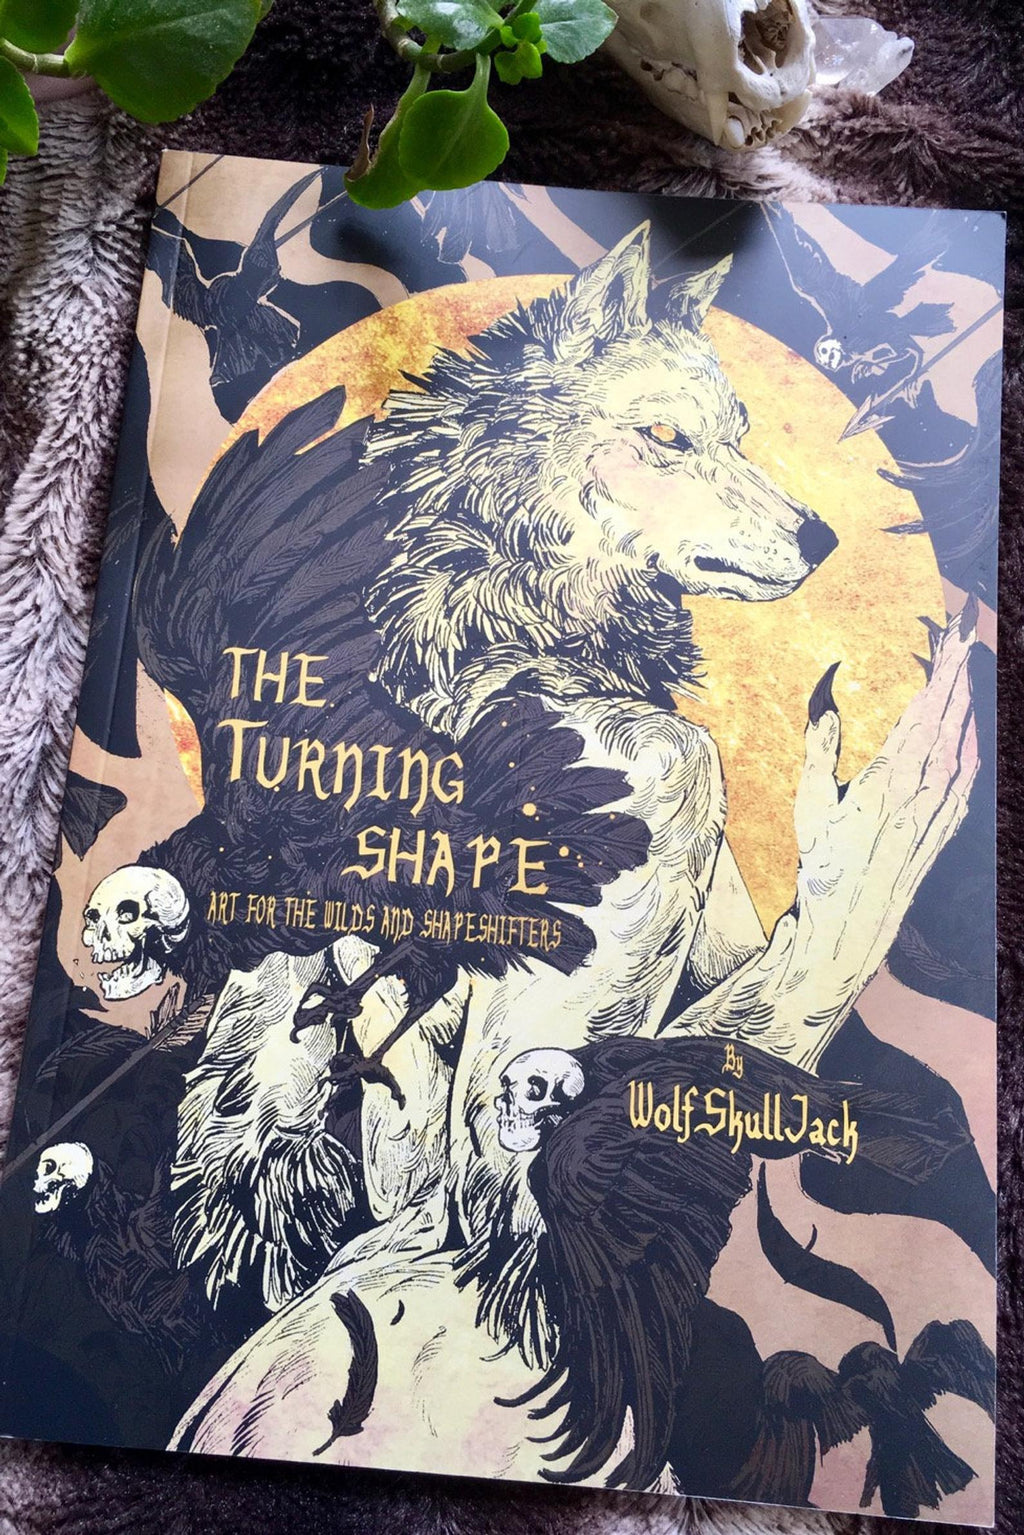 The Turning Shape art book